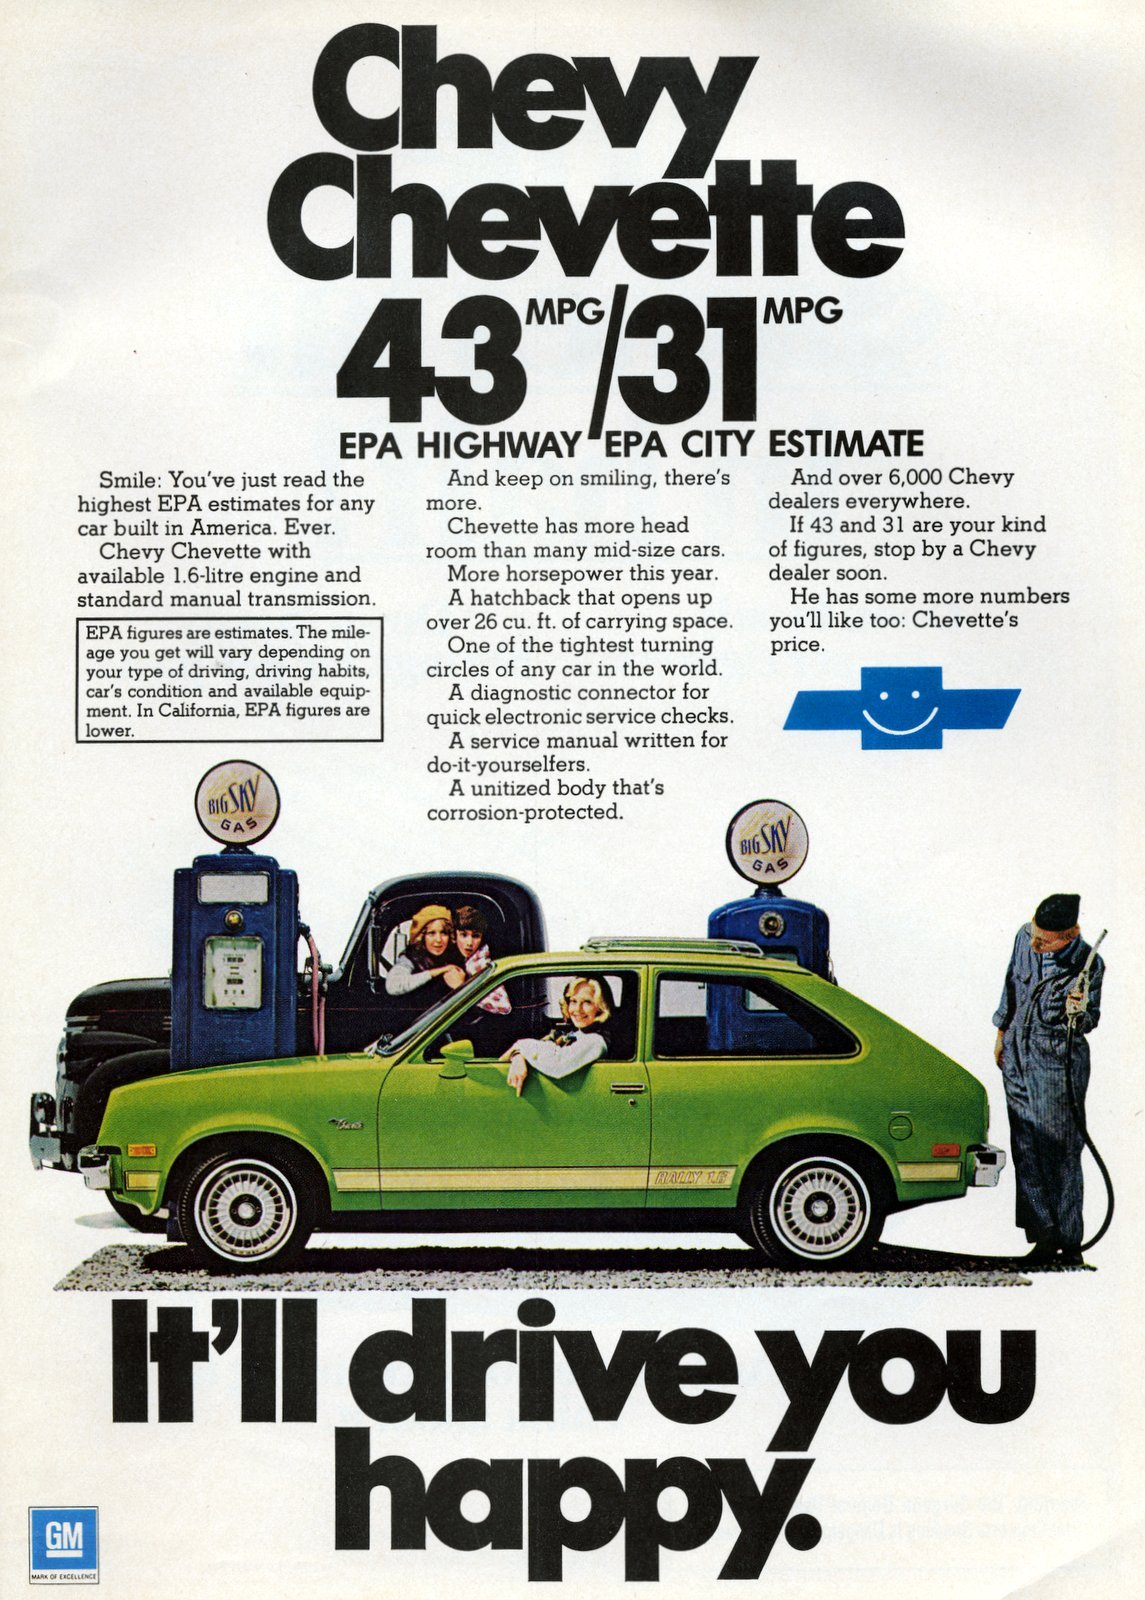 Chevy Chevette It'll drive you happy (1977)